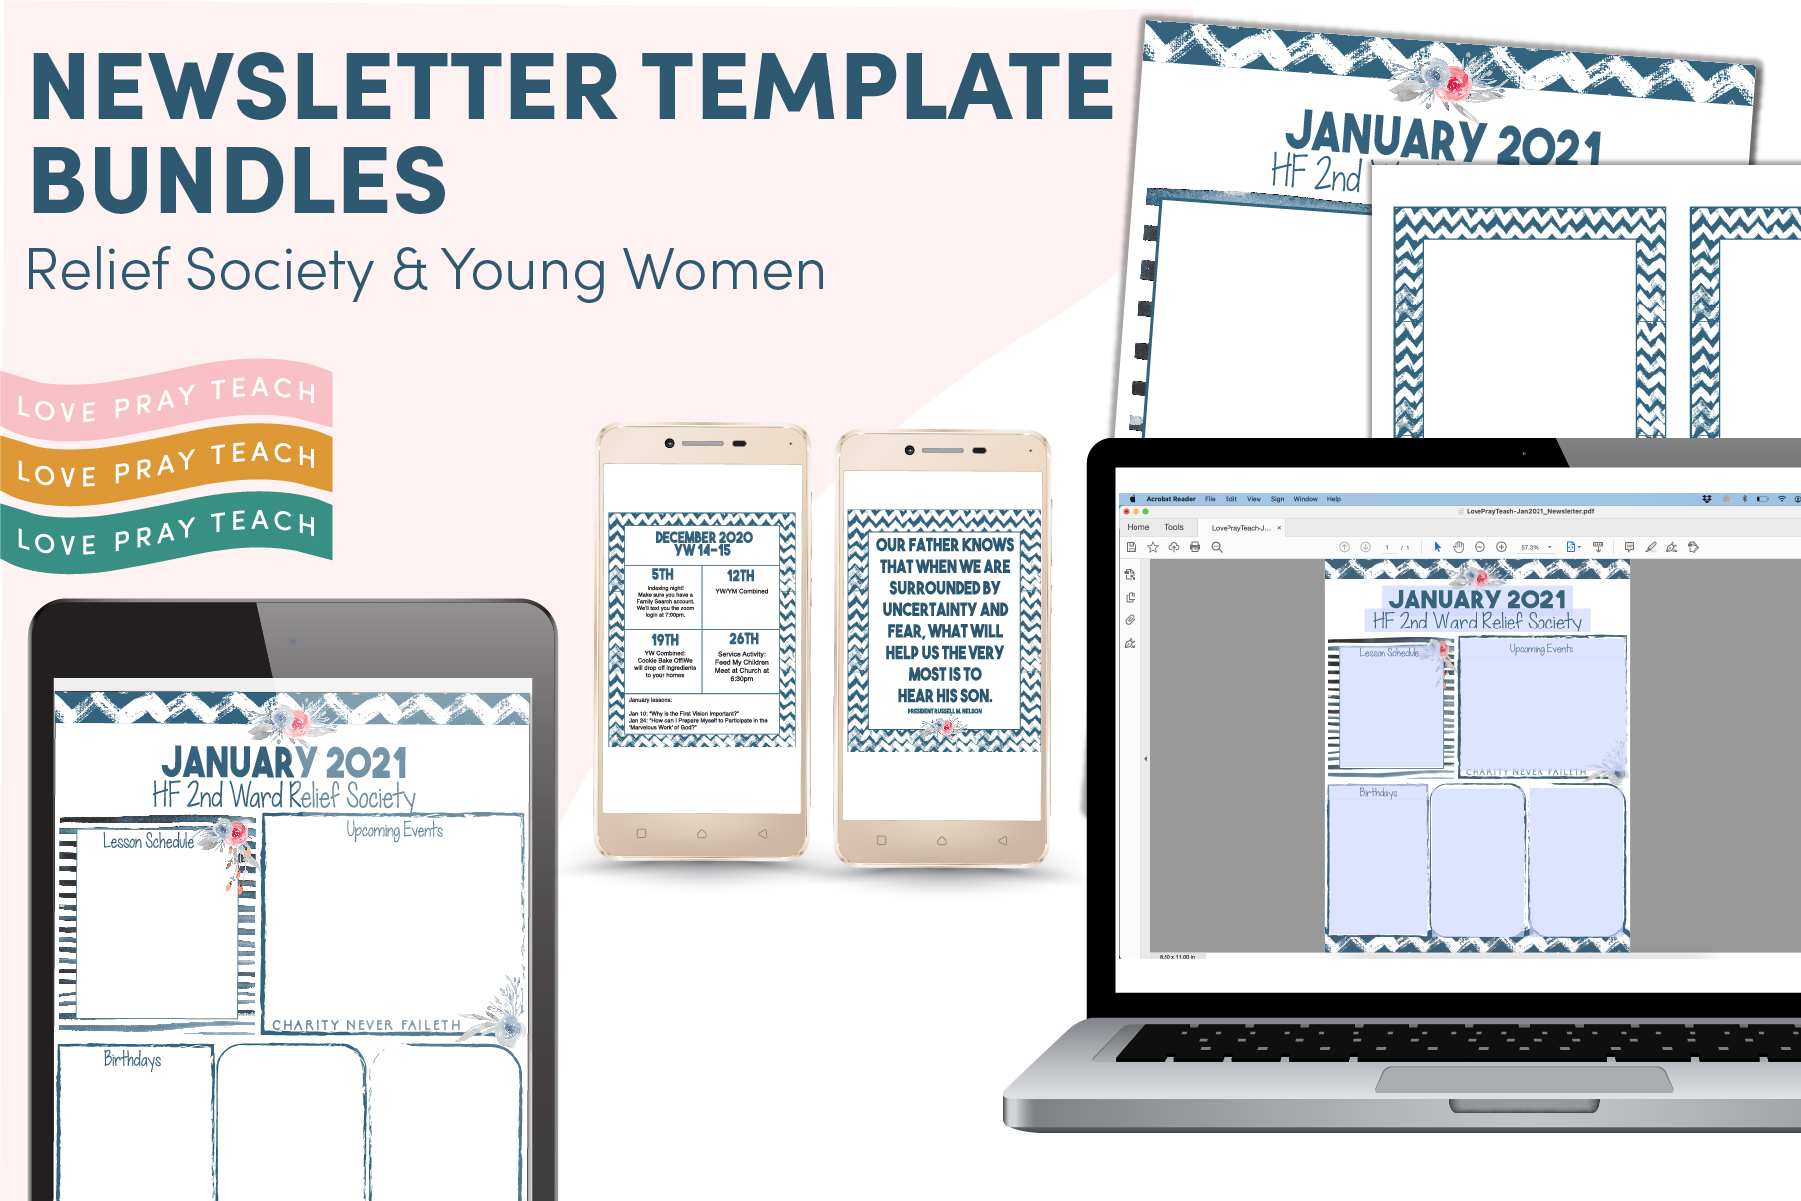 Editable Newsletter Templates and more! www.LovePrayTeach.com